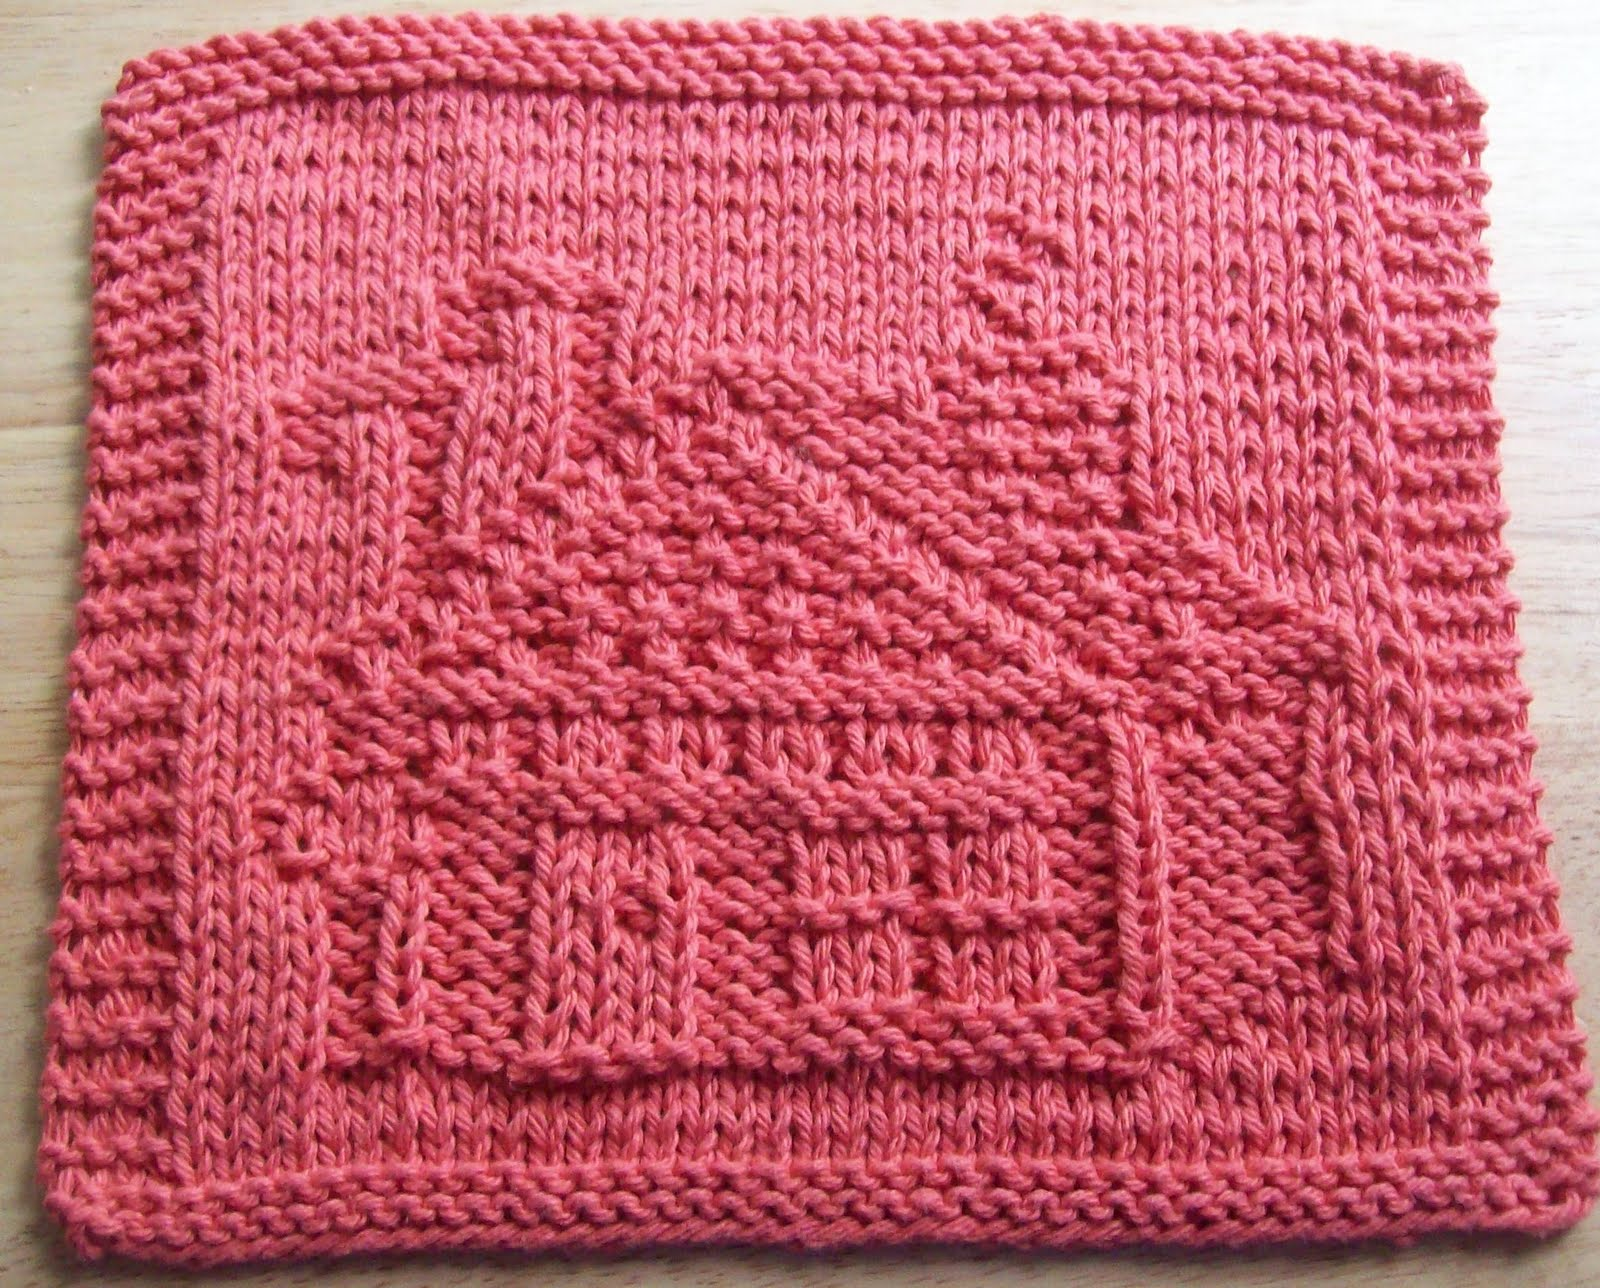 Pattern Knitted Dishcloth : DigKnitty Designs: Gingerbread House Too Knit Dishcloth ...